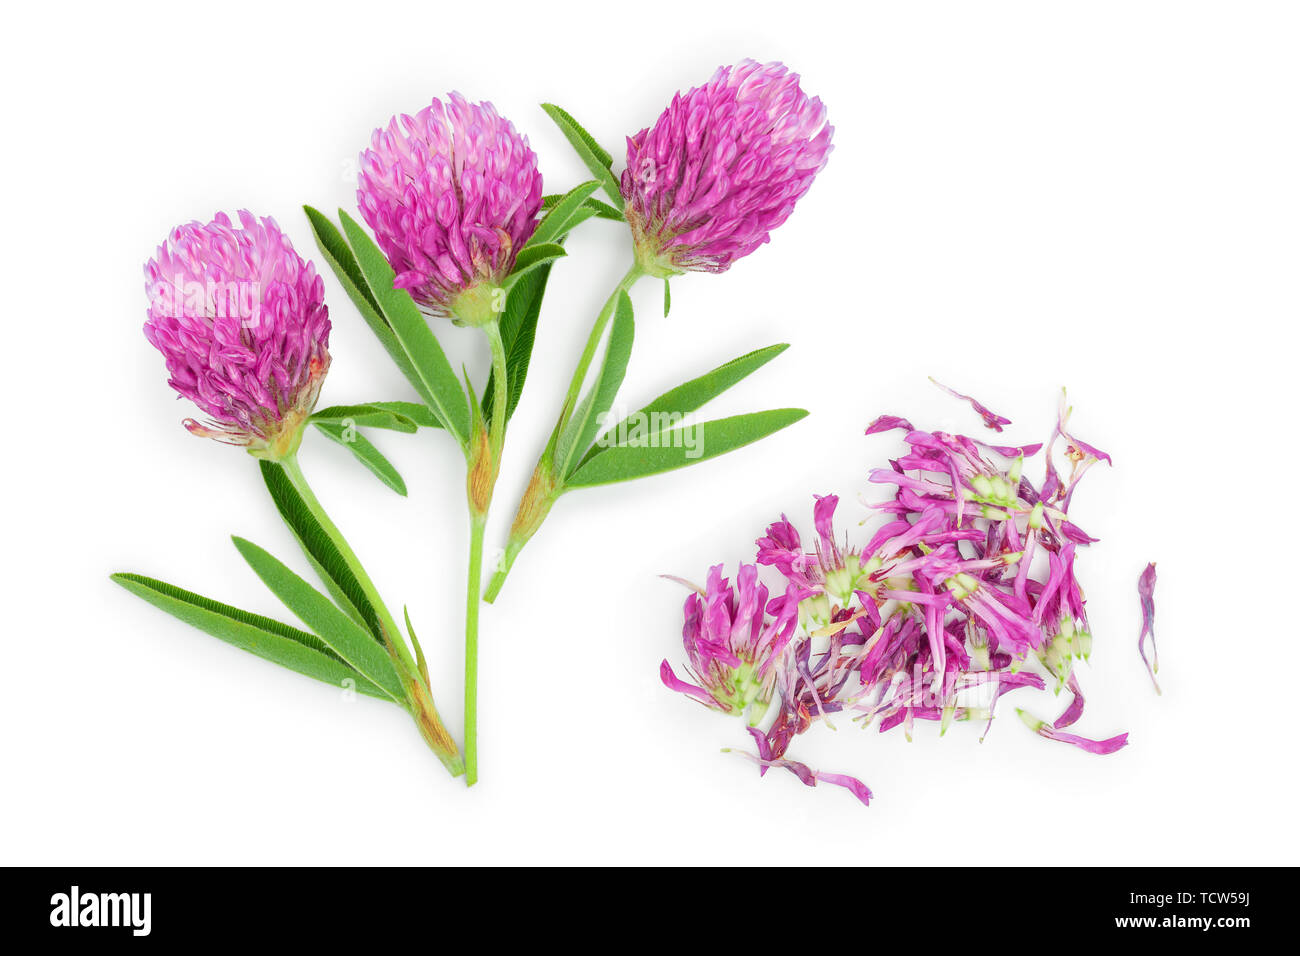 flower of a red clover clover with leaves and a stem close-up isolated on a white background. Top view. - Stock Image